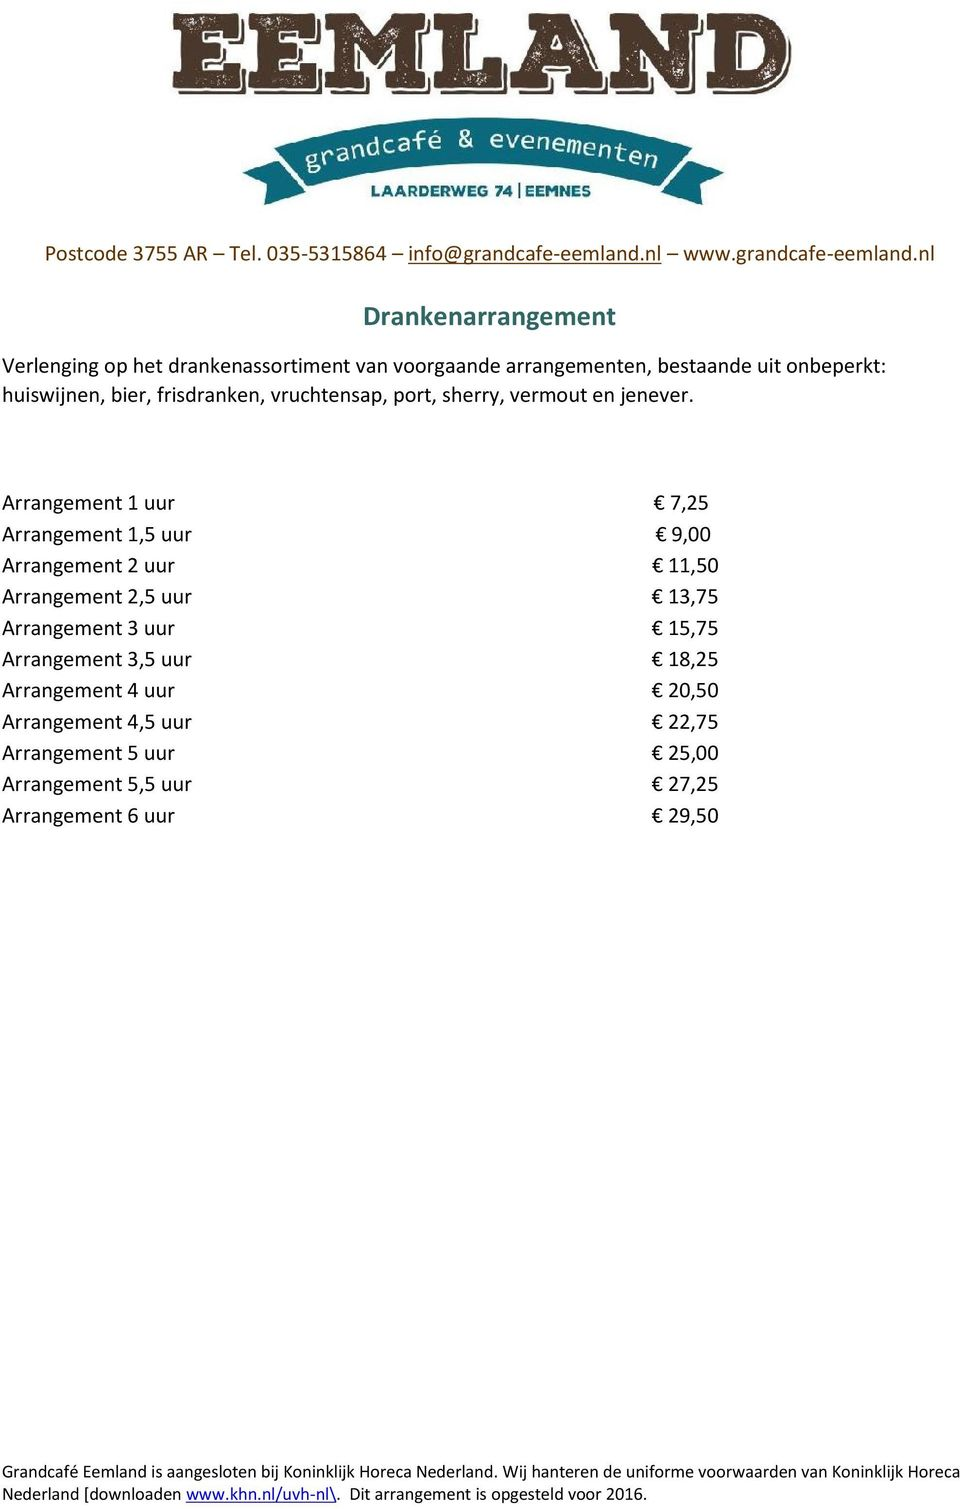 Arrangement 1 uur 7,25 Arrangement 1,5 uur 9,00 Arrangement 2 uur 11,50 Arrangement 2,5 uur 13,75 Arrangement 3